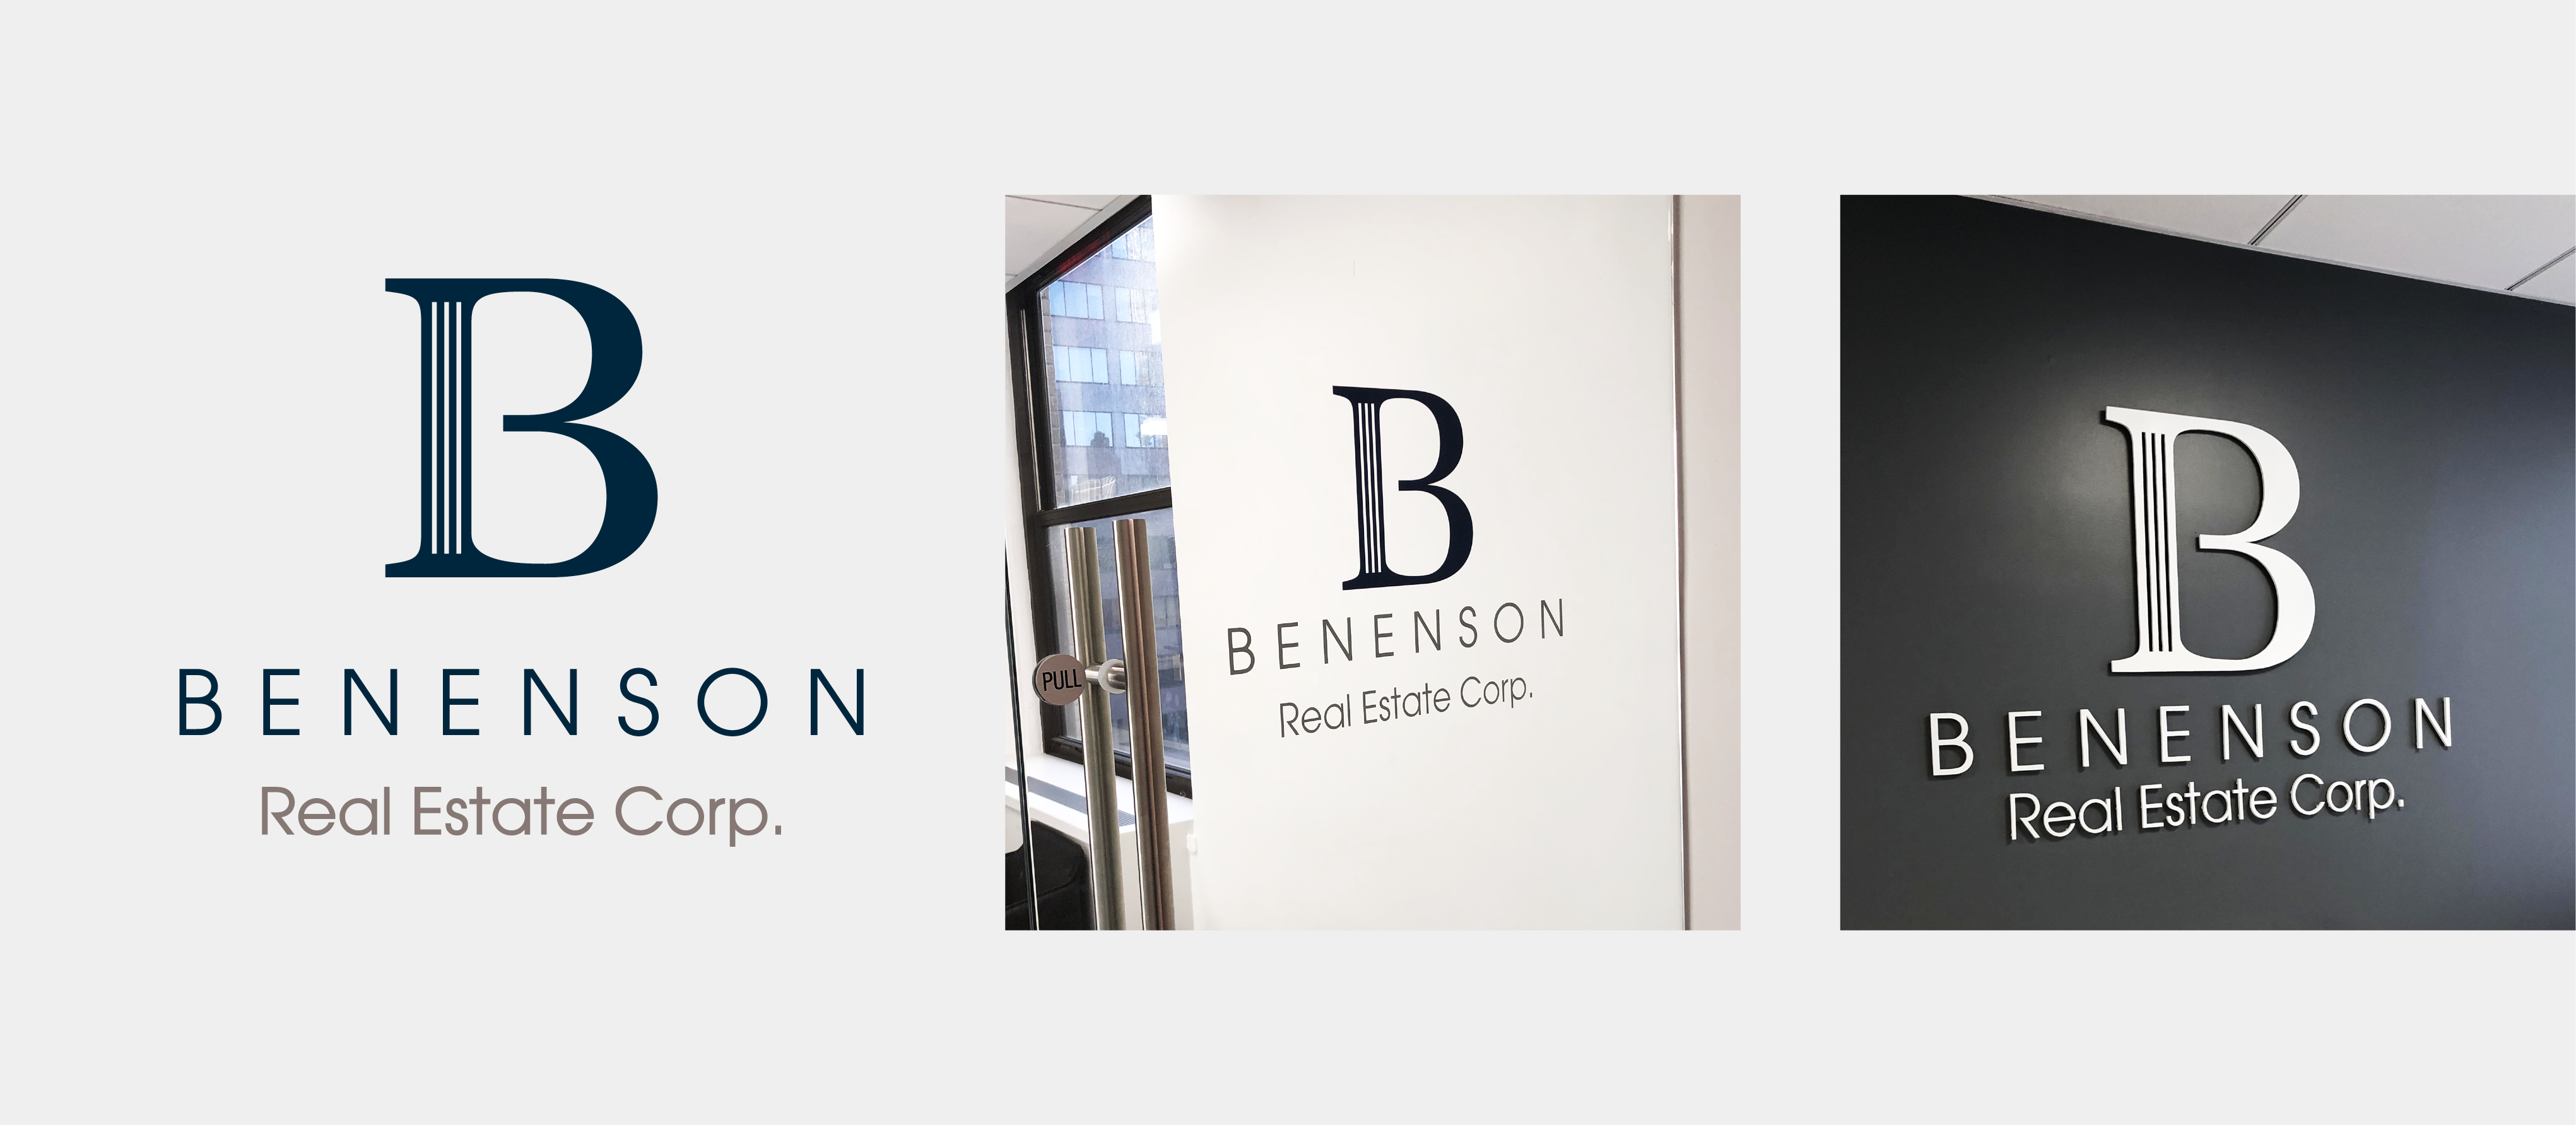 Benenson Real Estate Corp.